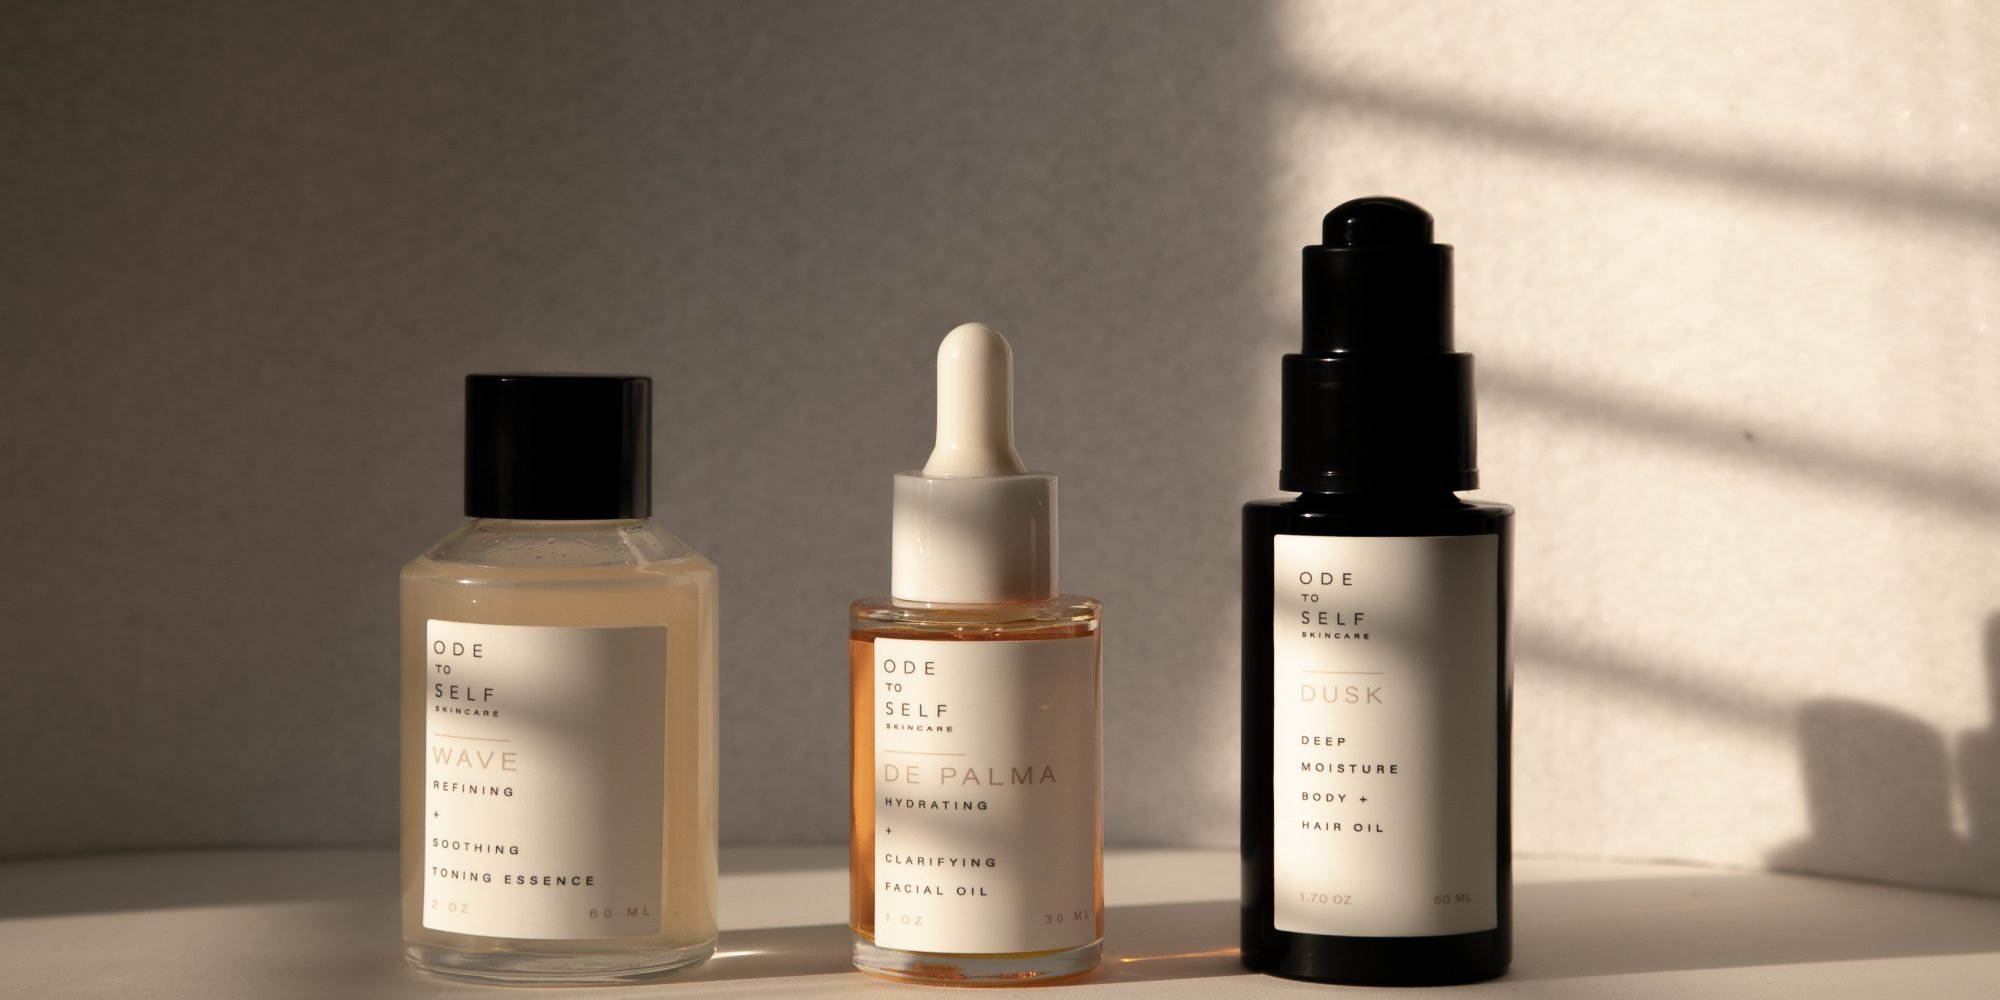 Ode To Self Changes Its Business Model, But Stays Committed To Supporting Women's Mental Health Through Skincare